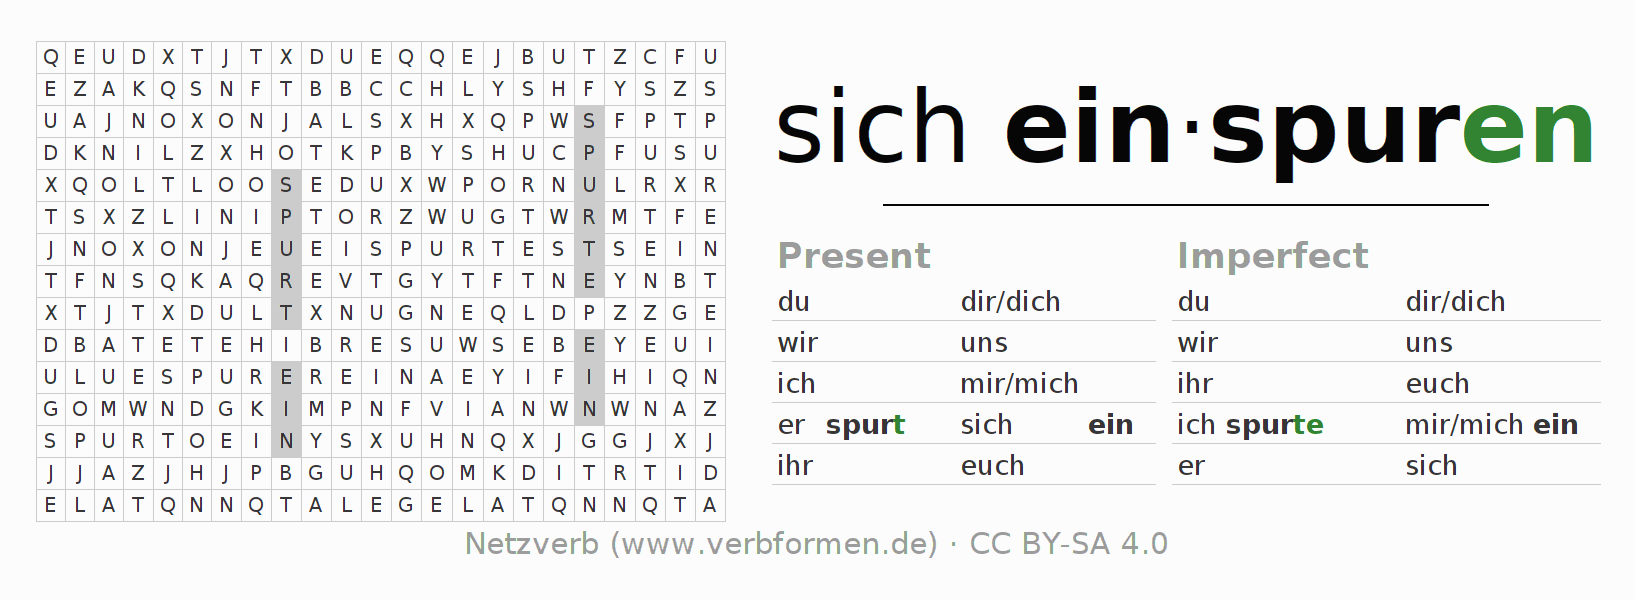 Word search puzzle for the conjugation of the verb sich einspuren